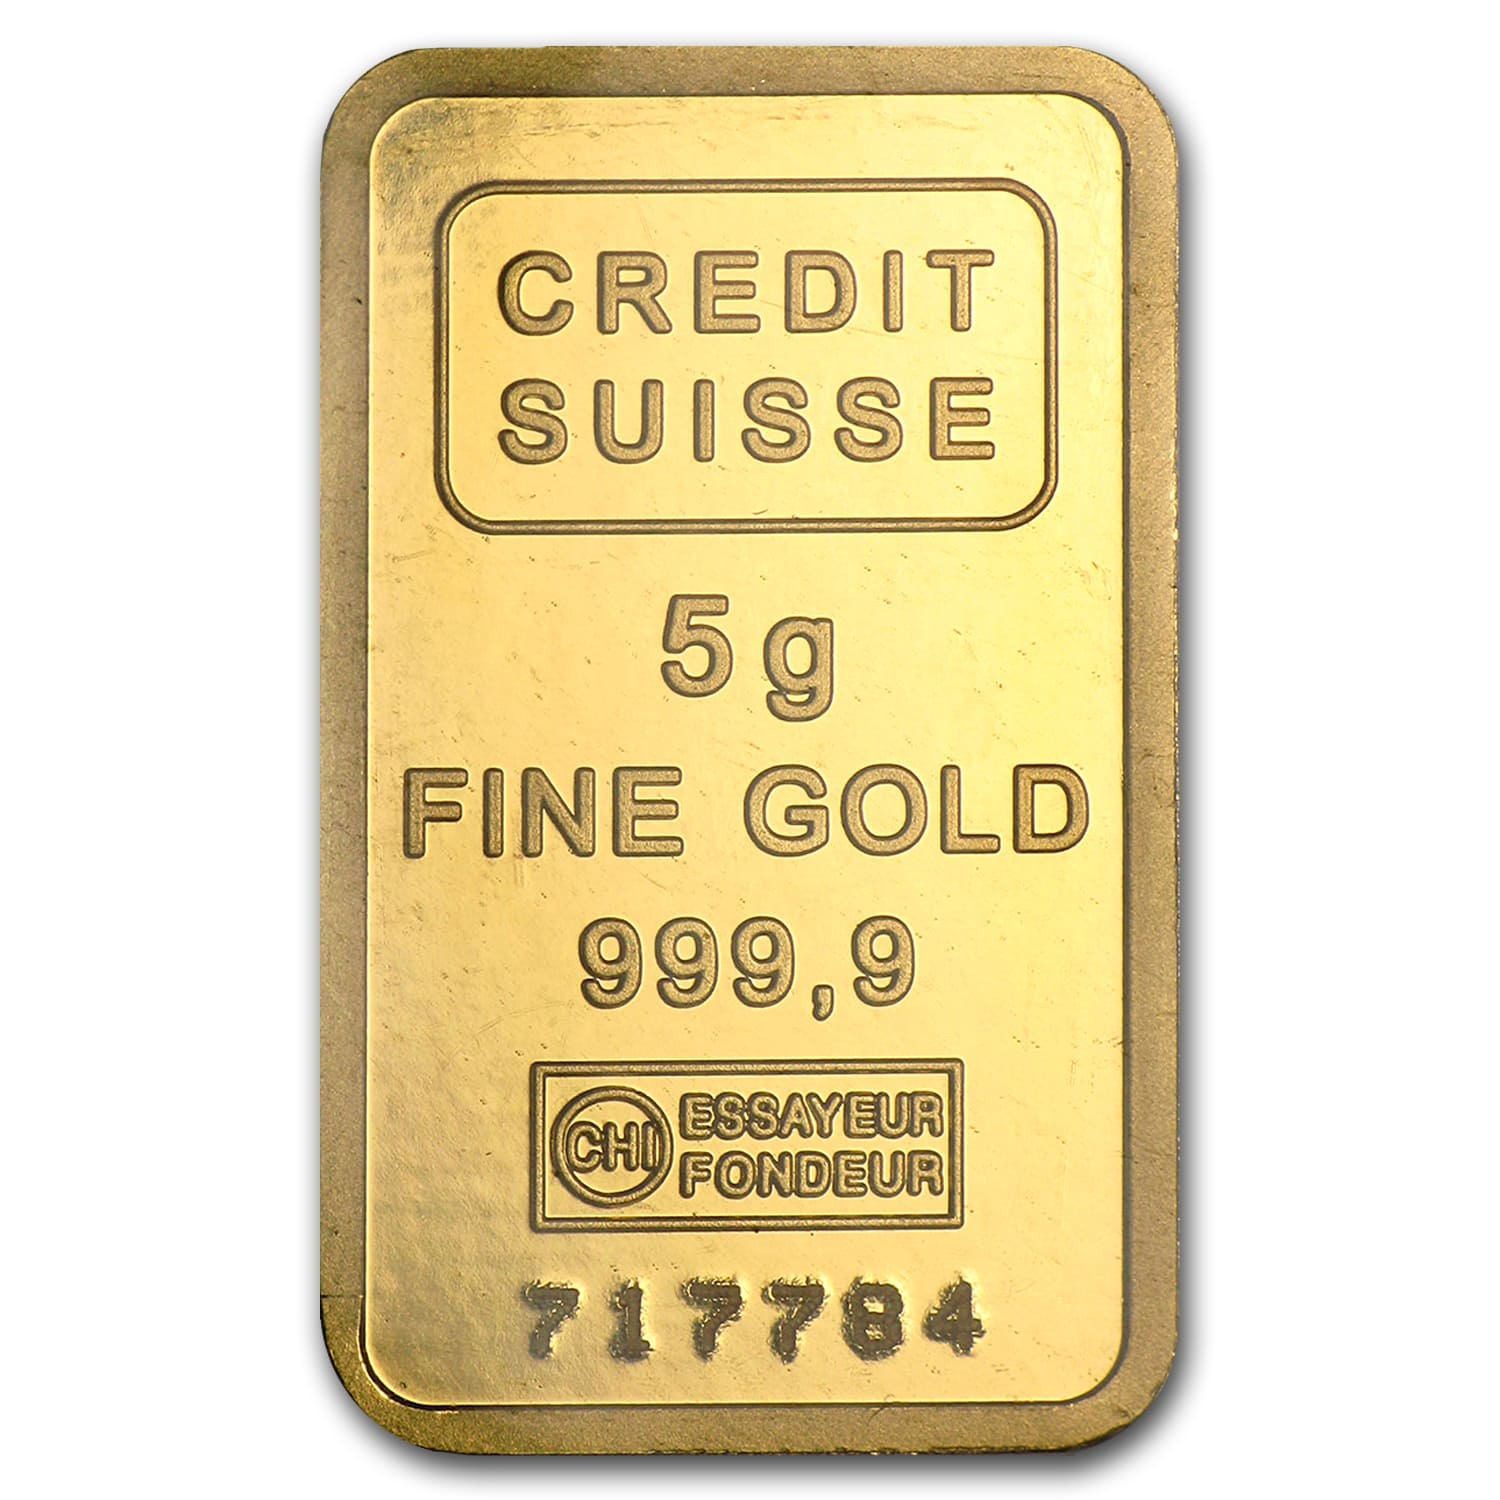 5 gram Gold Bar - Credit Suisse (Statue of Liberty)